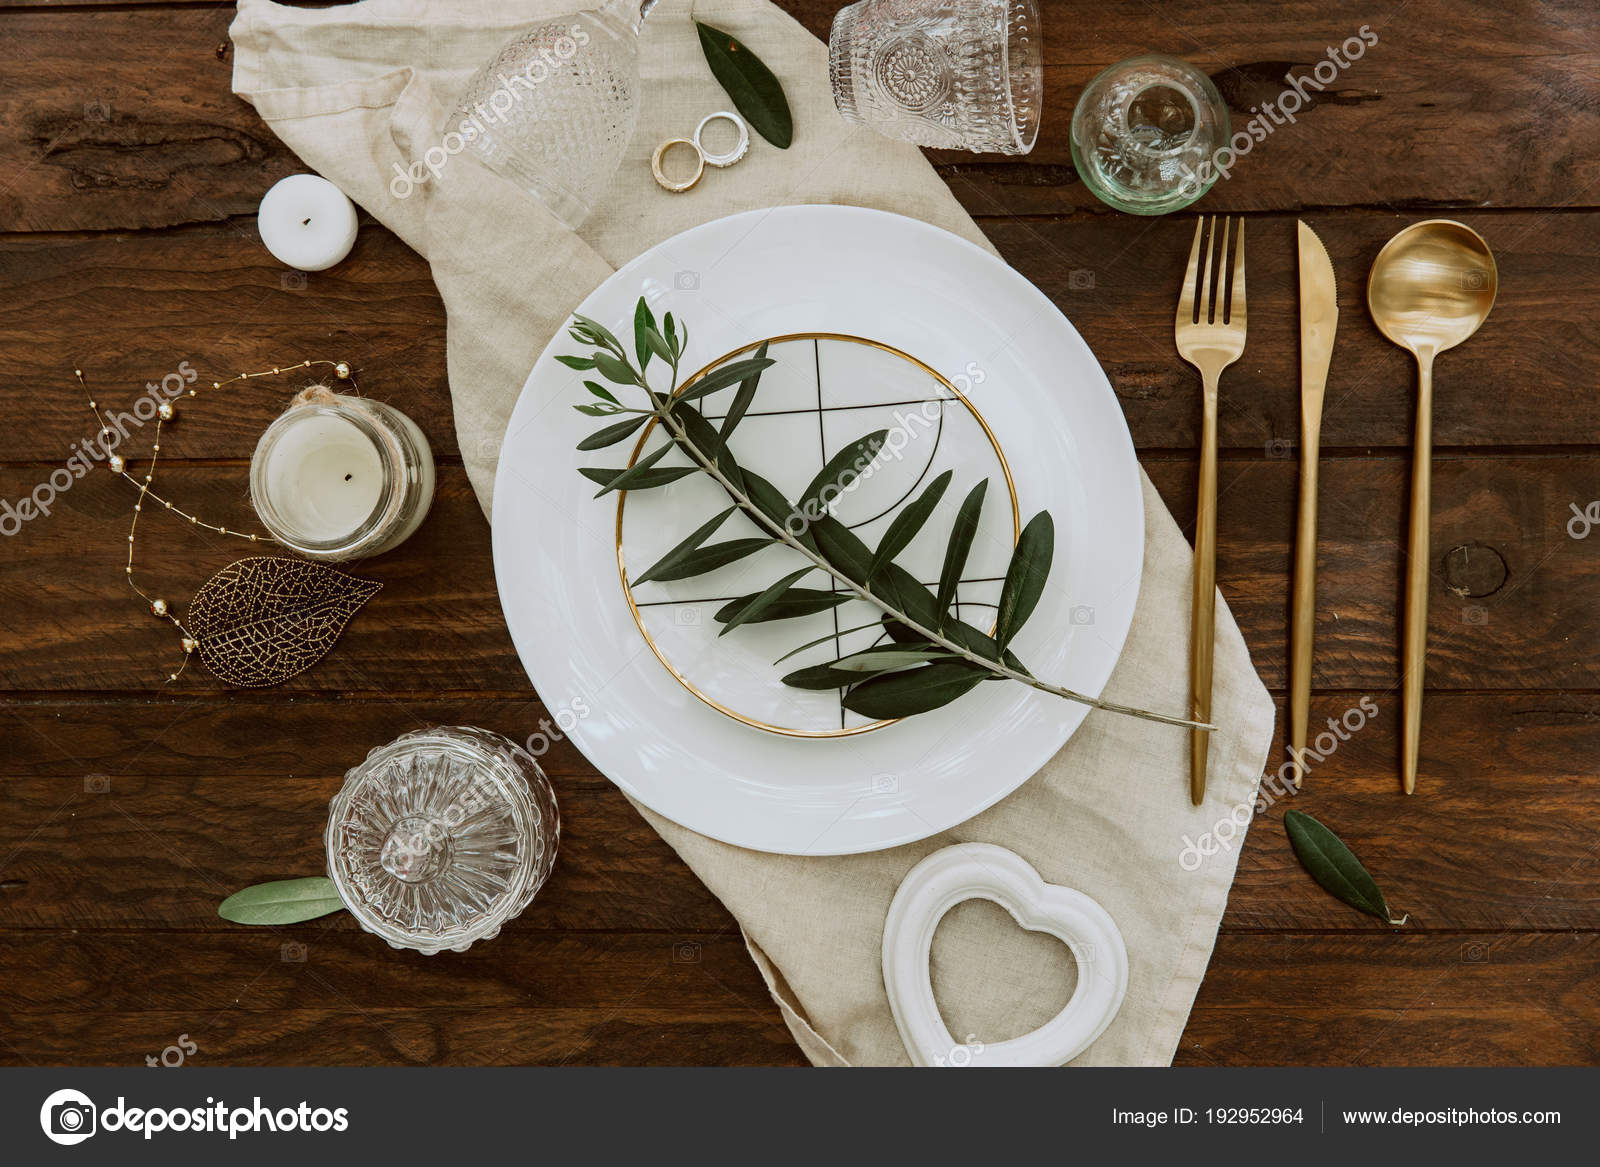 Rustic Wedding Decorated Table Vintage Cutlery Top View Flat Lay